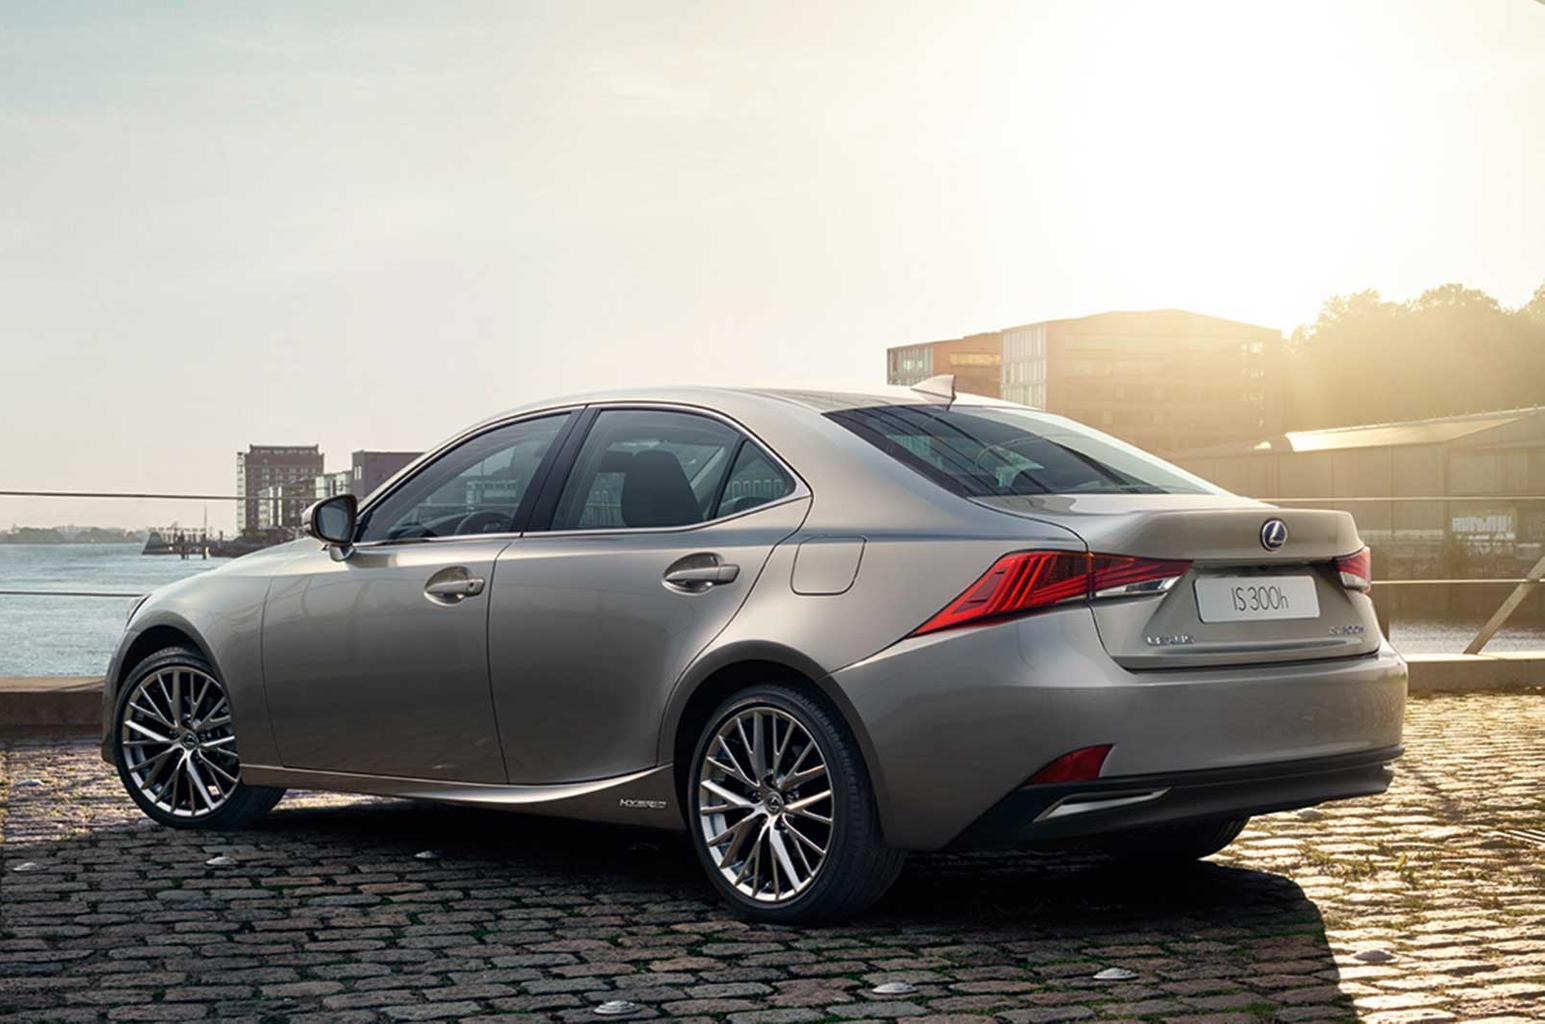 Facelifted Lexus IS revealed at Paris motor show